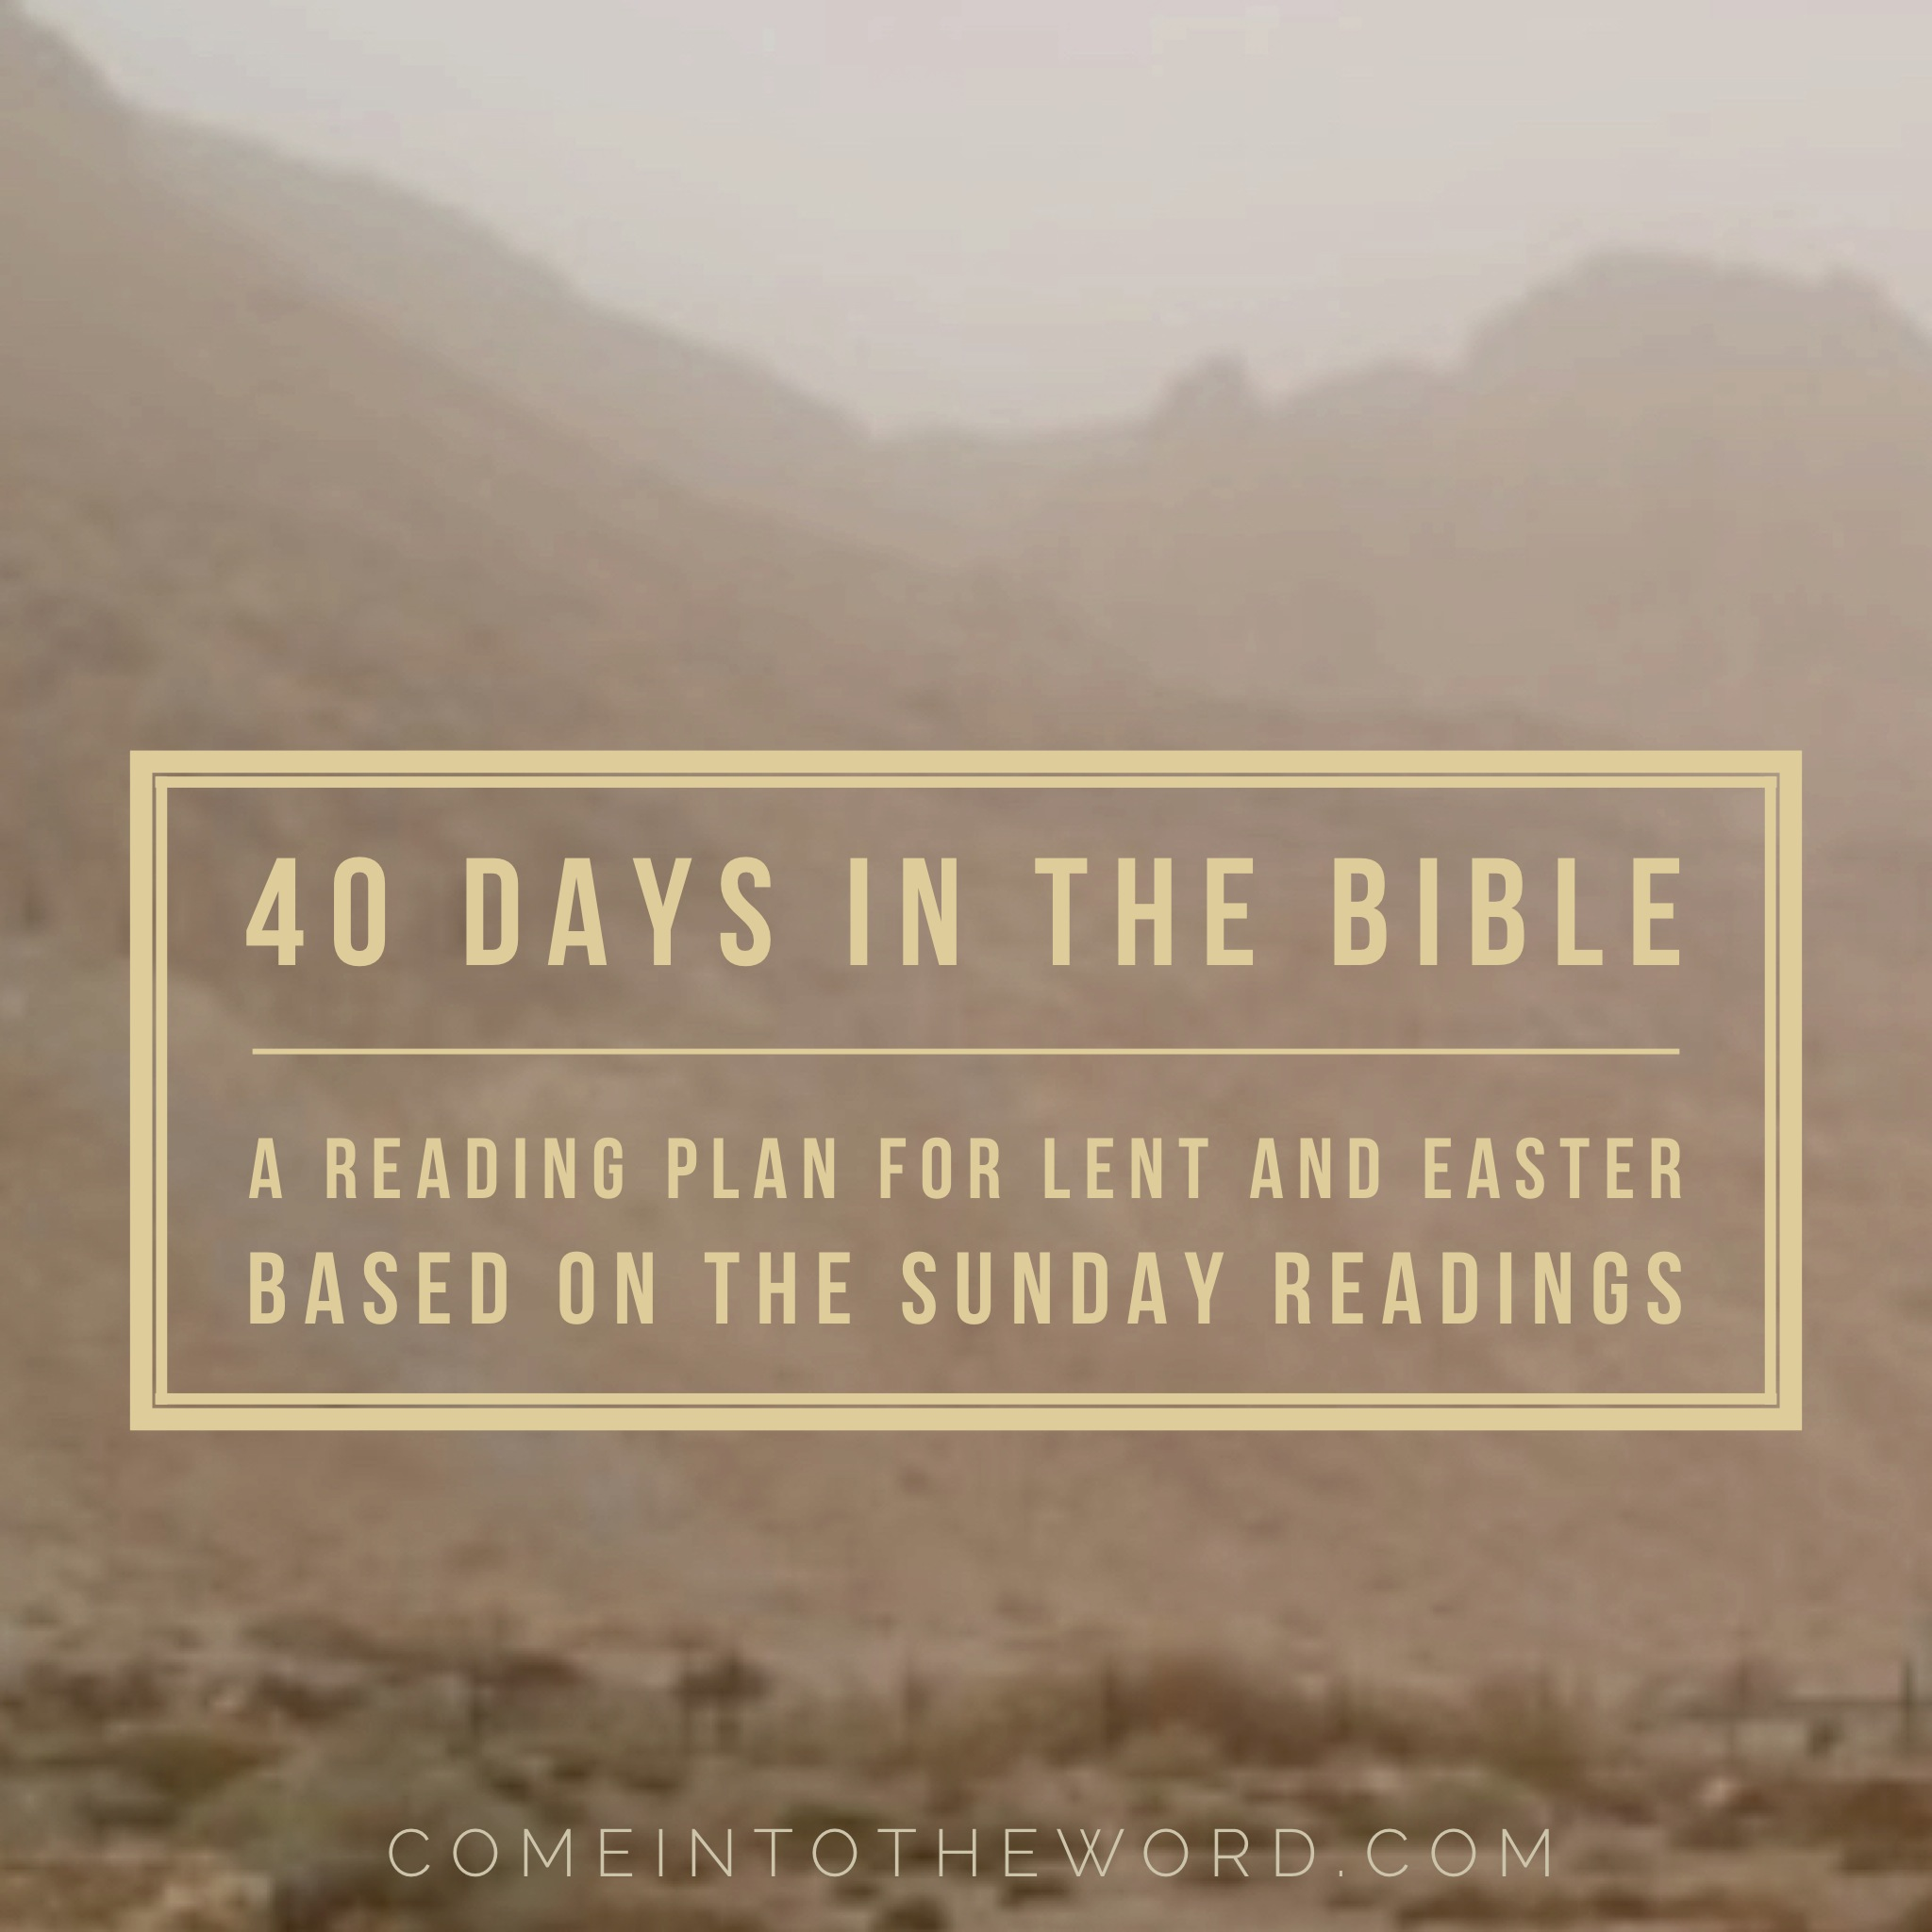 40 Days in the Bible: A reading plan for Lent and Easter based on the Sunday Readings